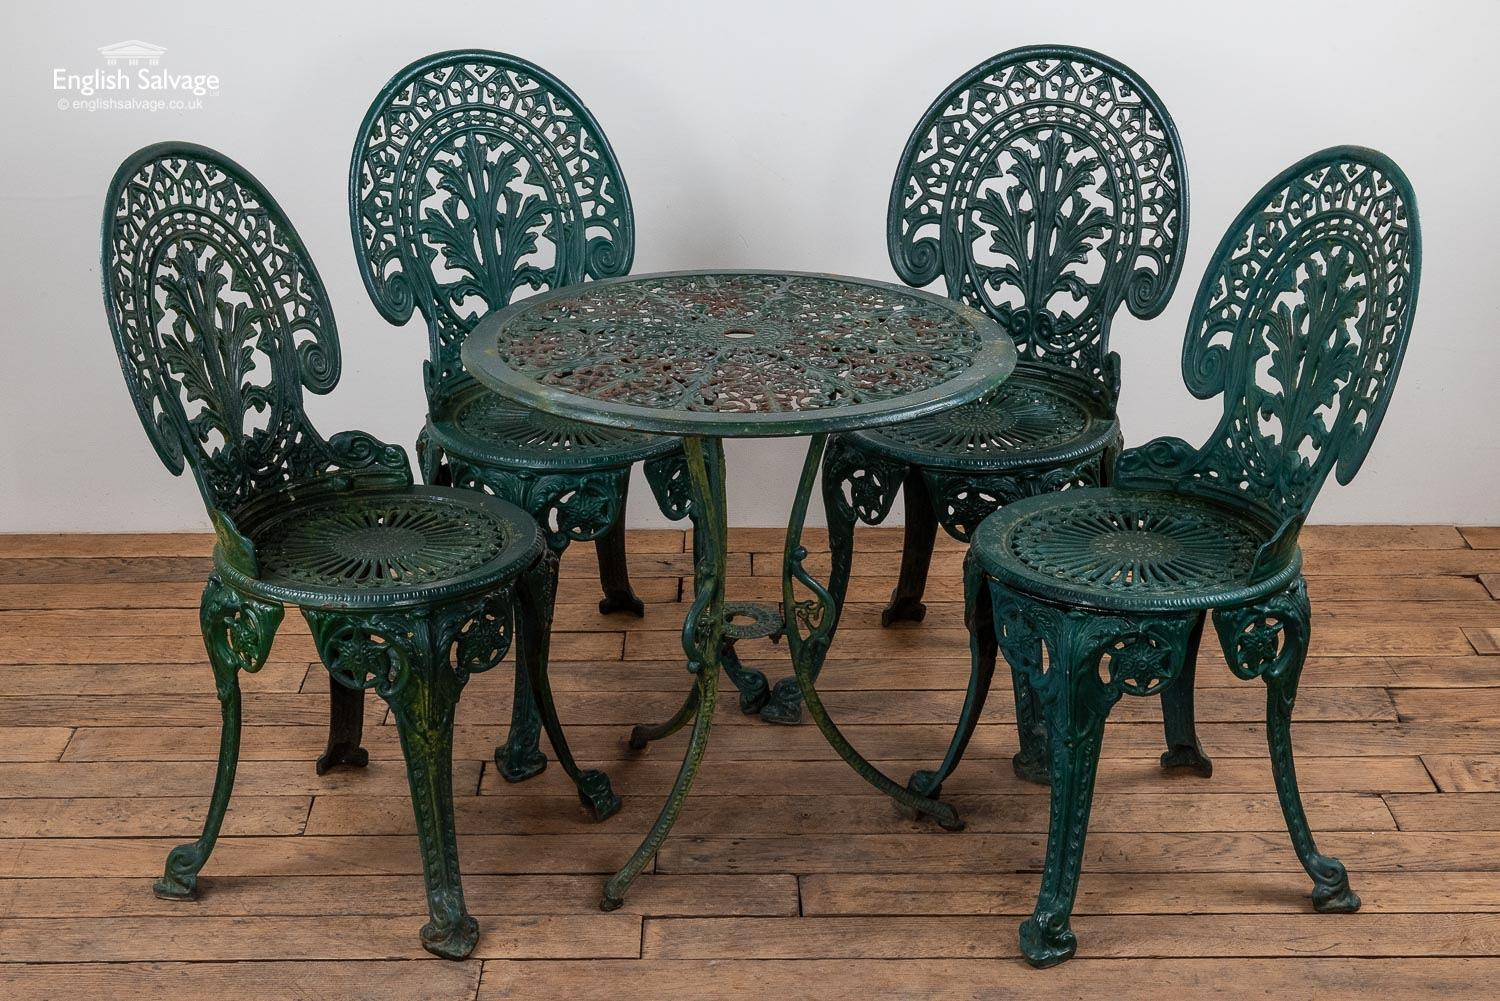 Green Cast Iron Garden Table And Chairs